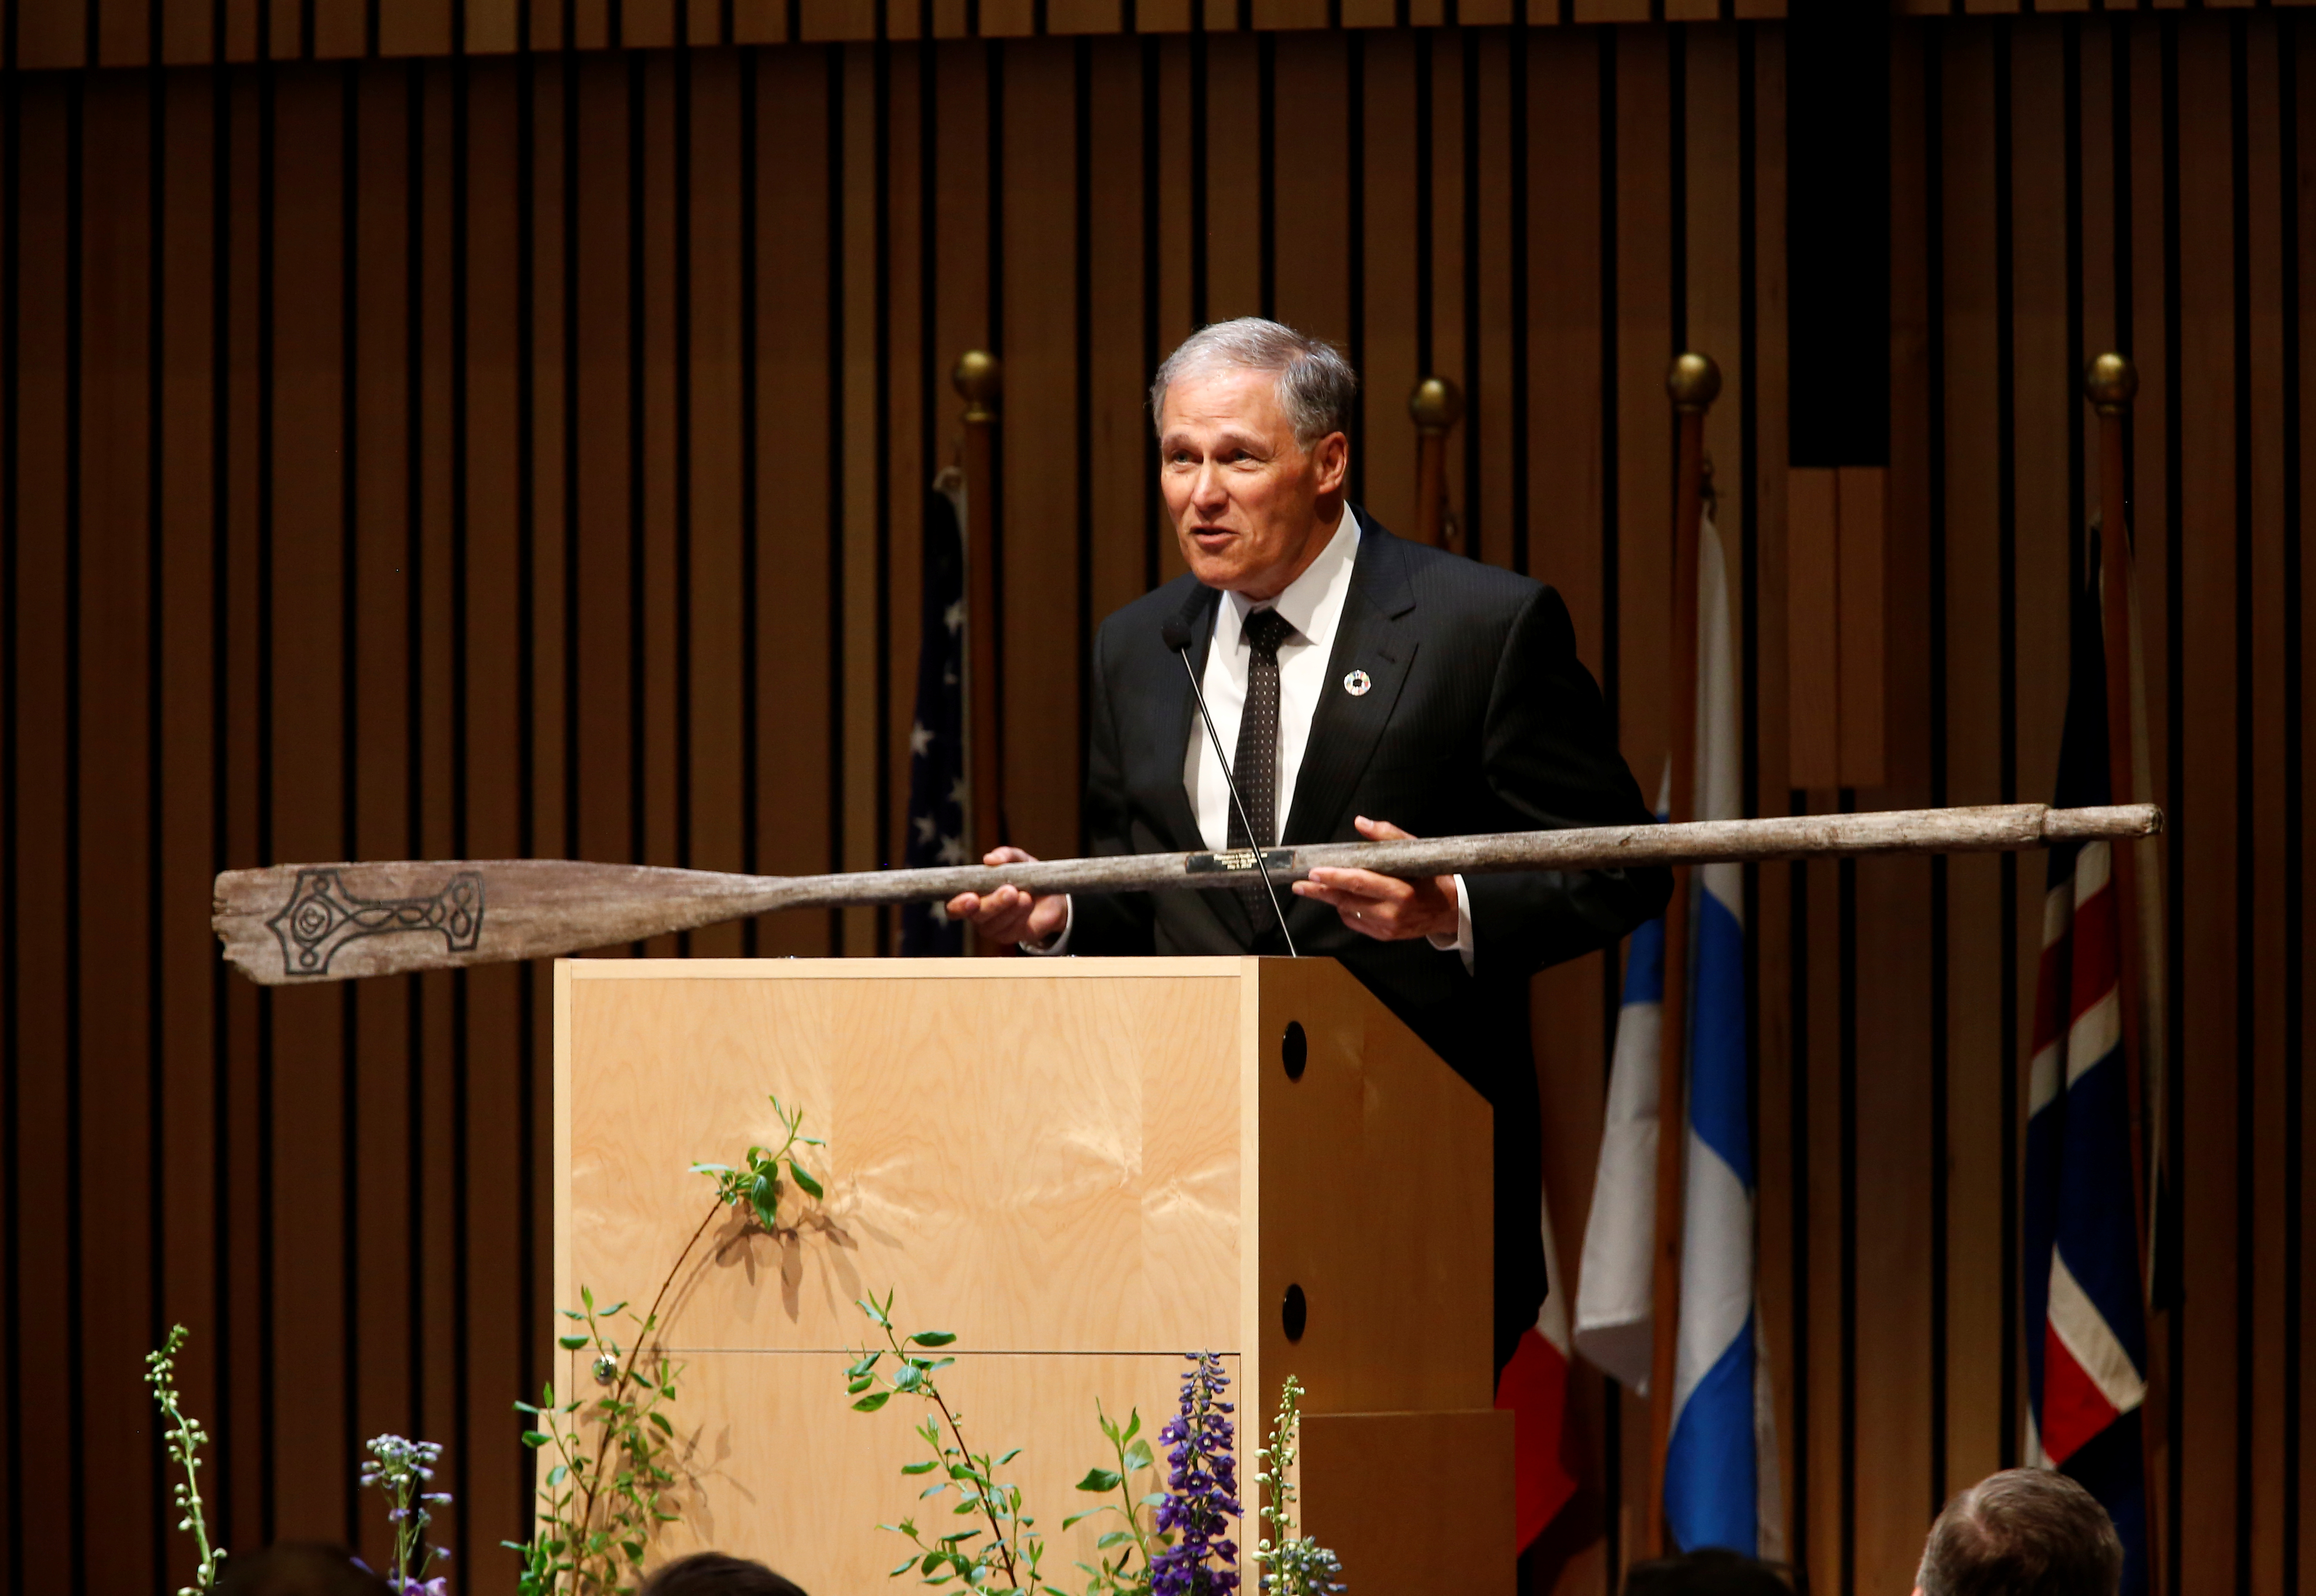 Governor Inslee presents an oar as a gift to the museum during a gala at the Nordic Museum in Seattle